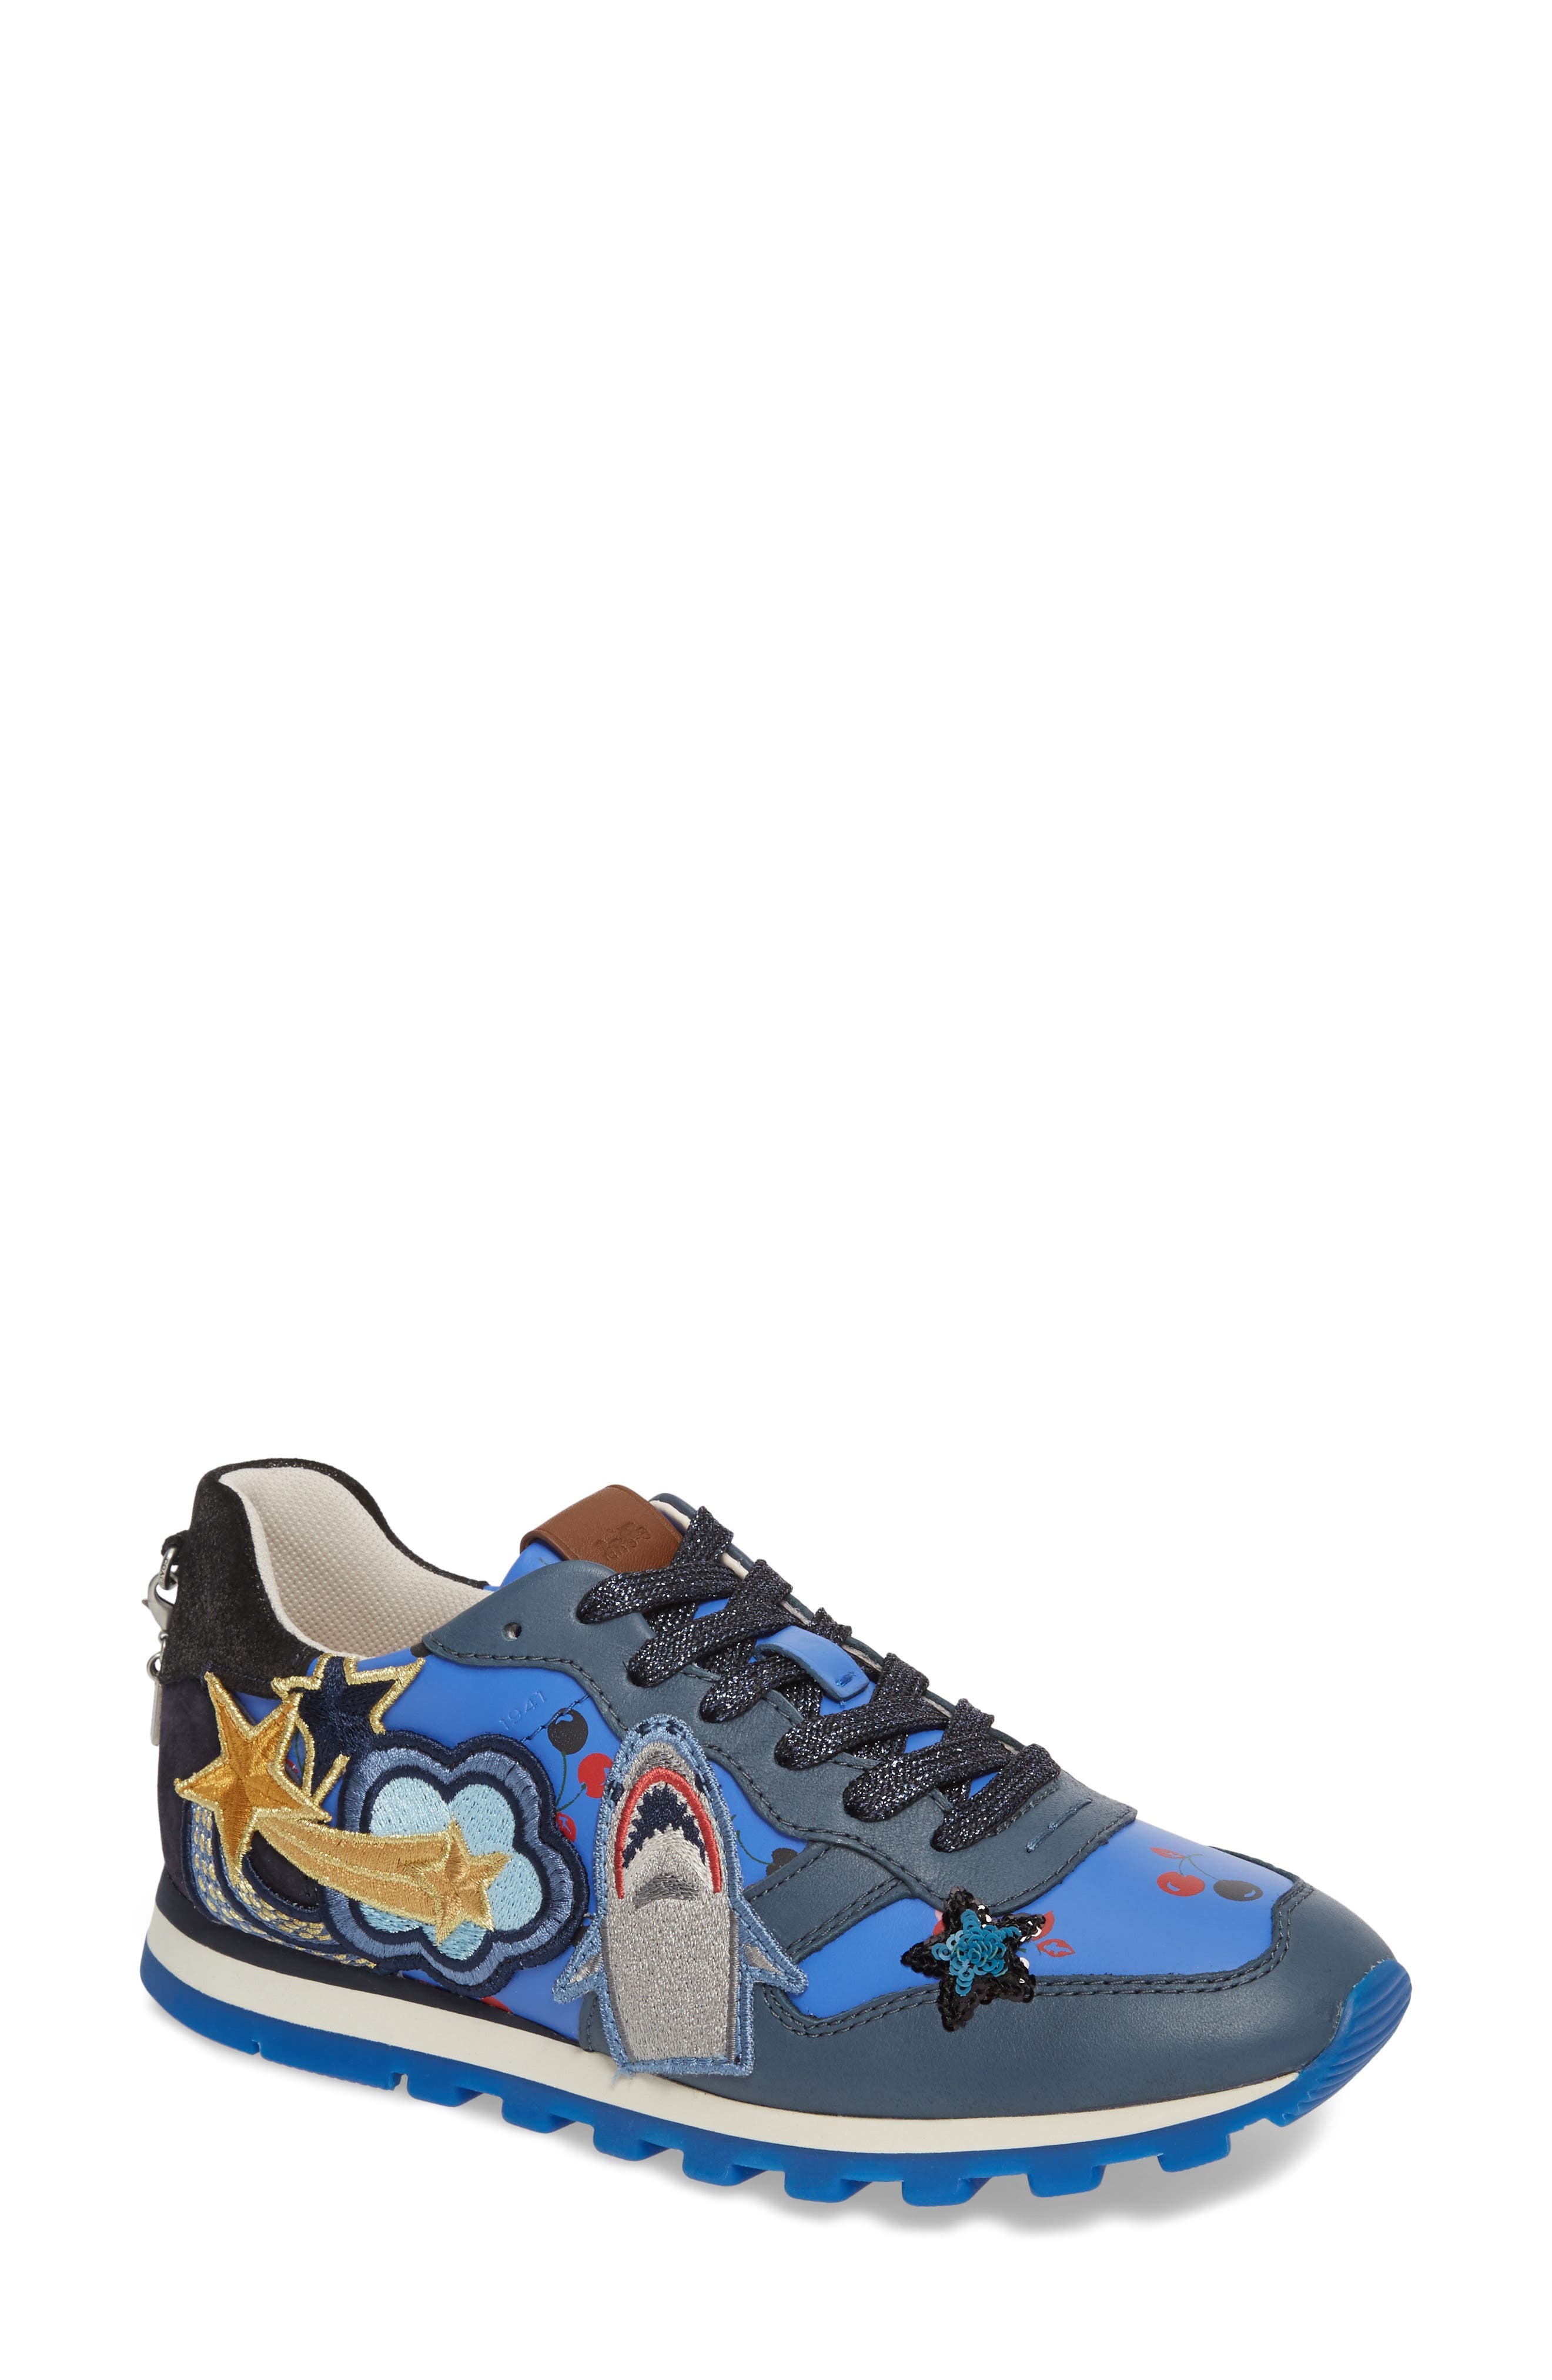 Alternate Image 1 Selected - COACH Patch Sneaker (Women)